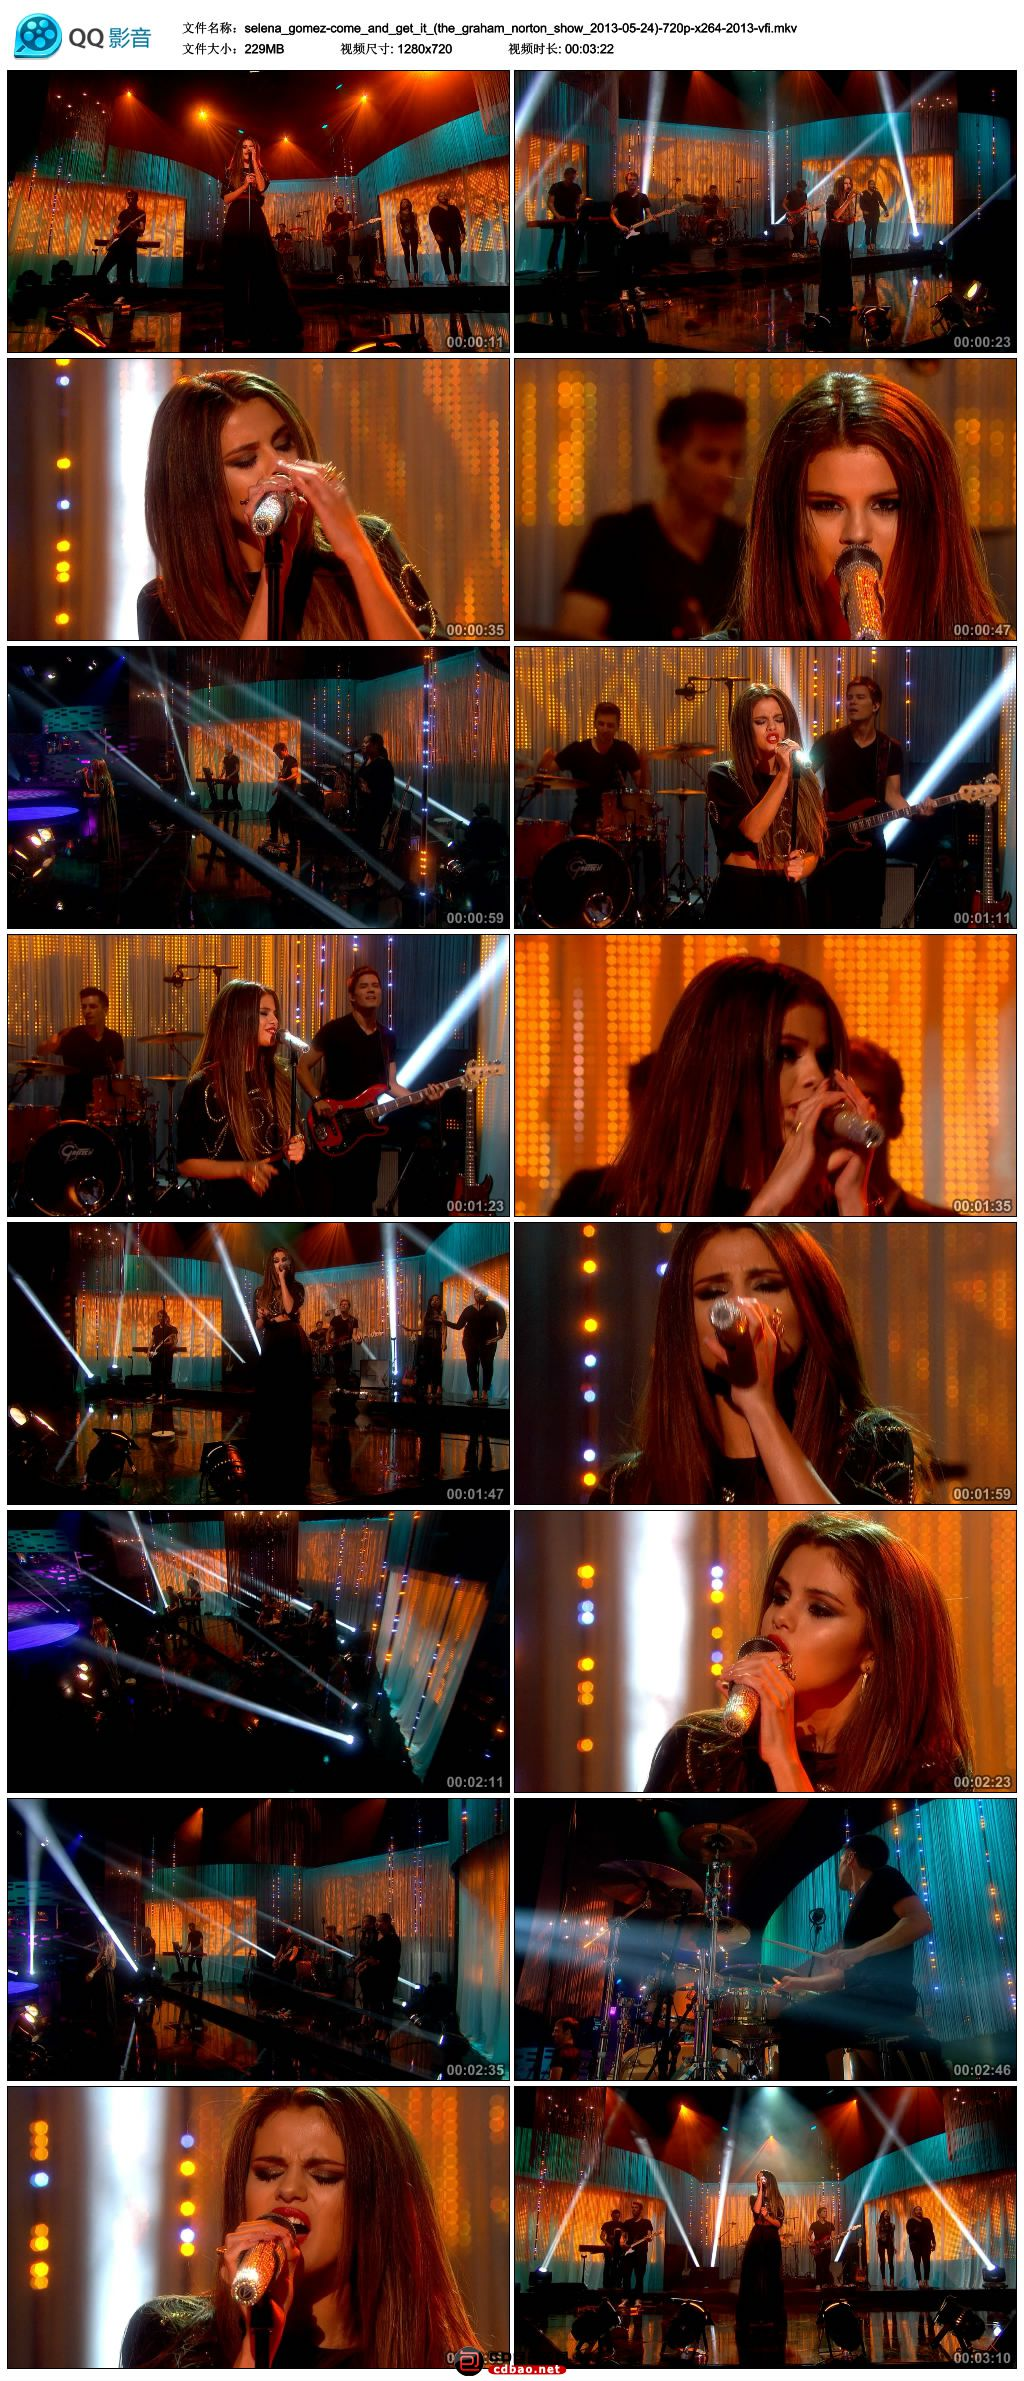 selena_gomez-come_and_get_it_(the_graham_norton_show_2013-05-24)-720p-x264-2013-.jpg